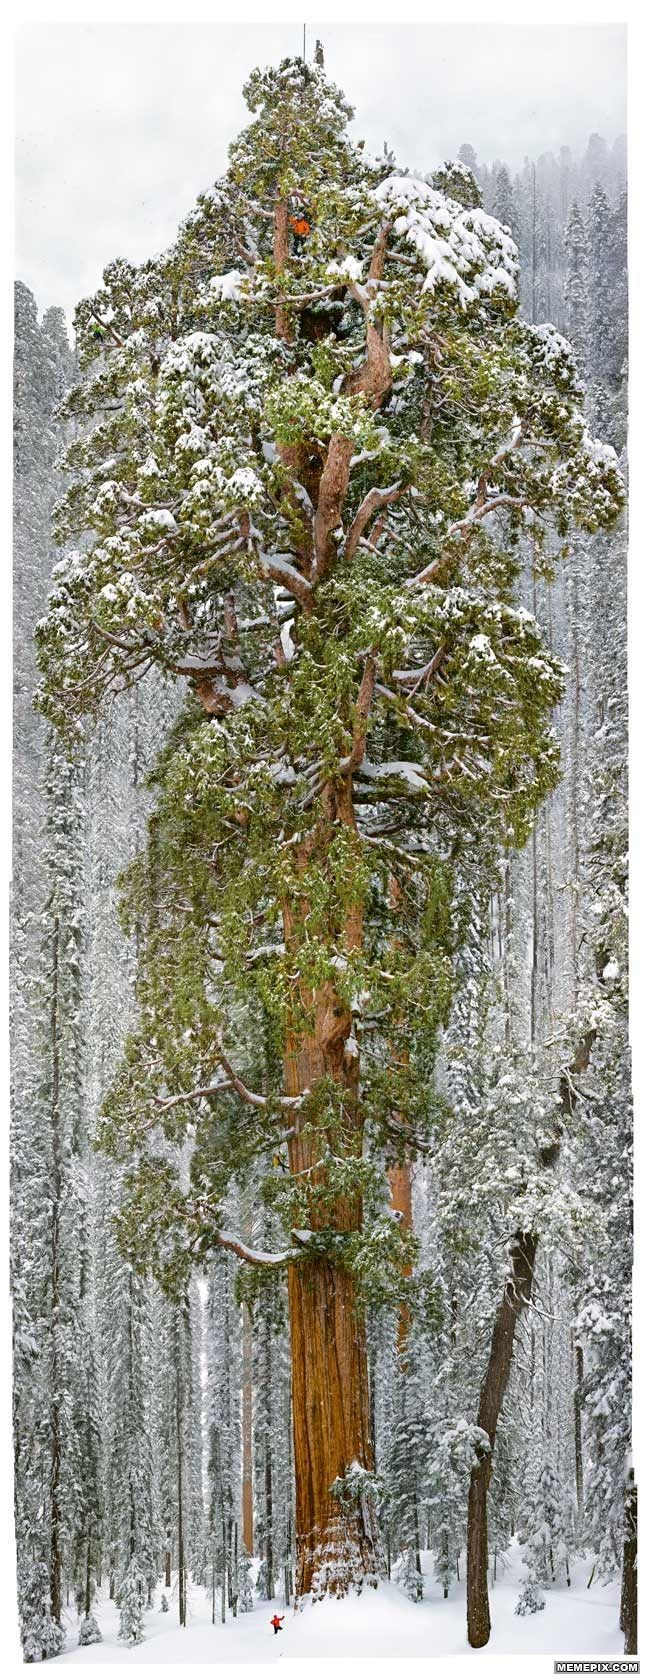 The 'President', the second largest tree on earth.